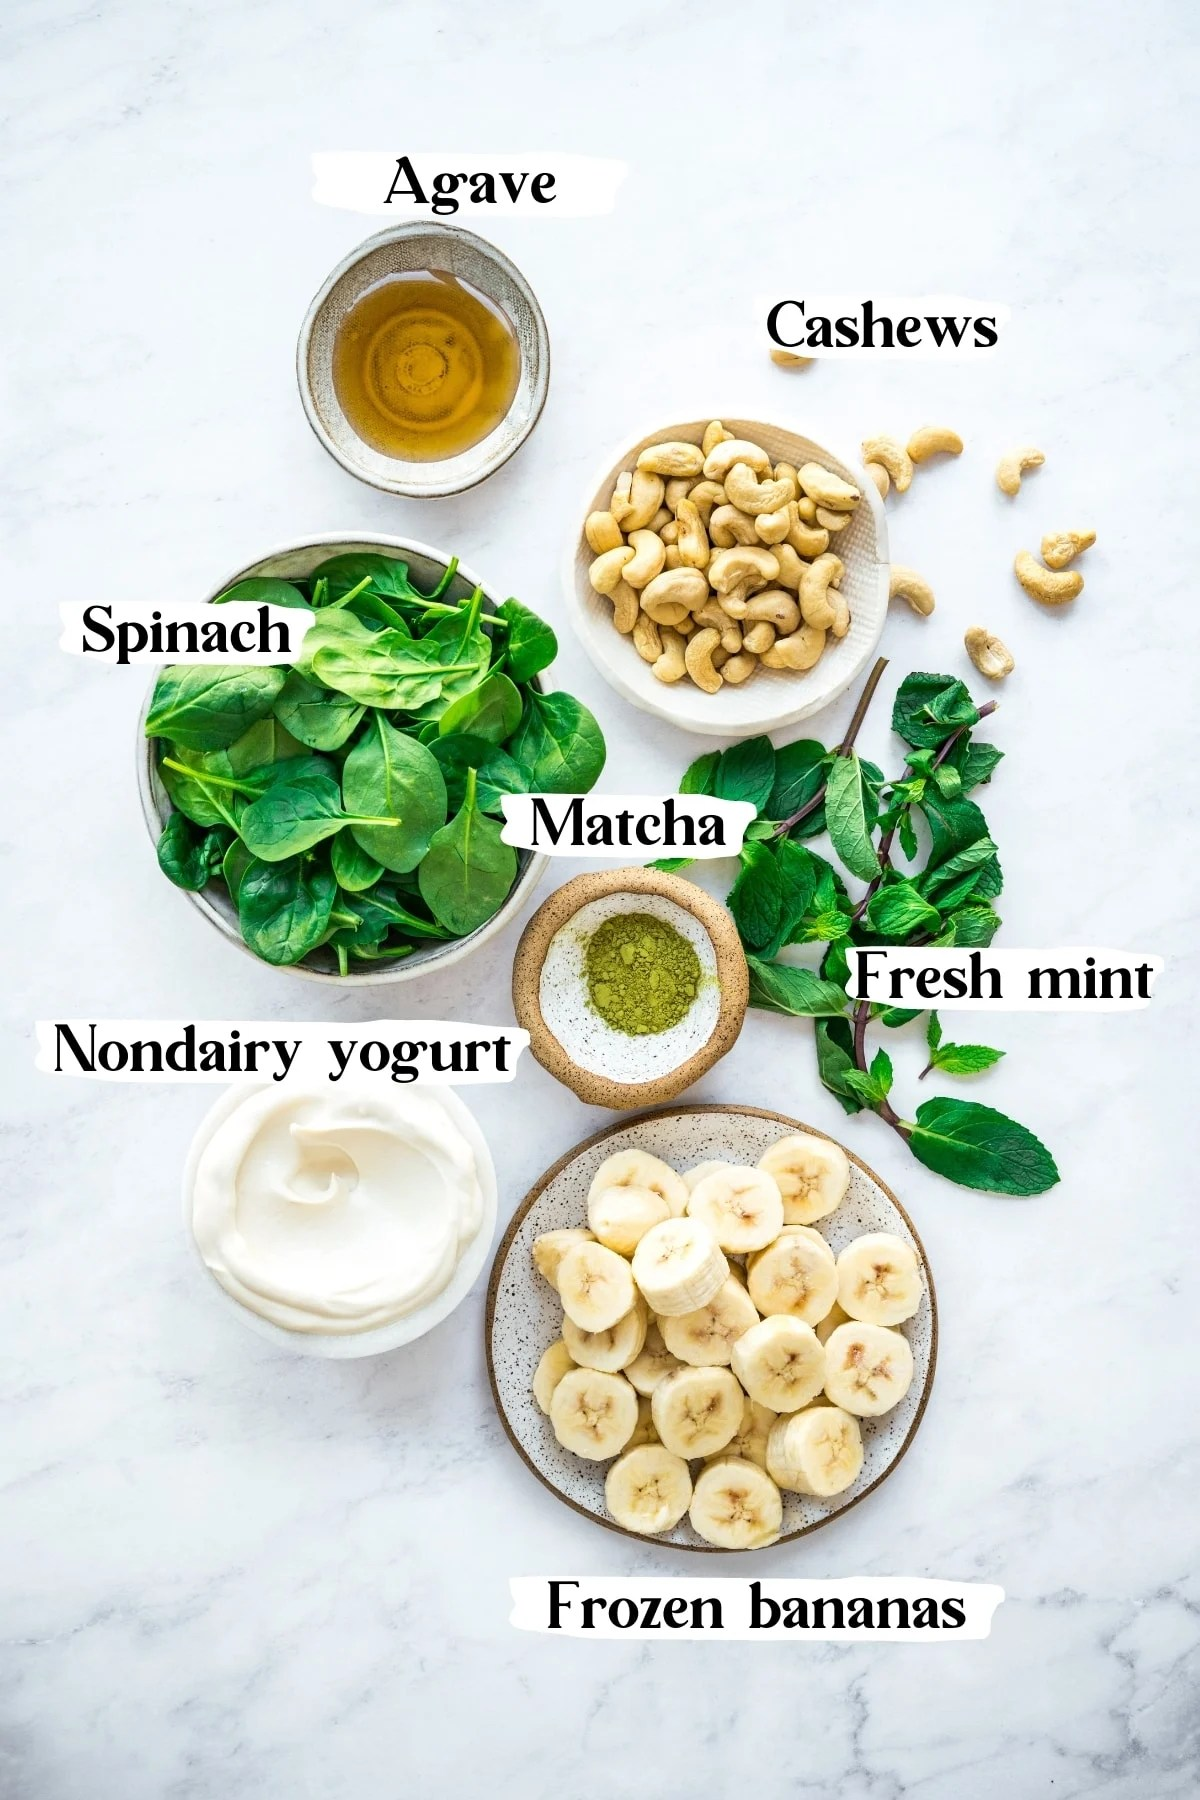 overhead view of ingredients for healthy shamrock shake, including frozen bananas, cashews, mint, spinach and yogurt.